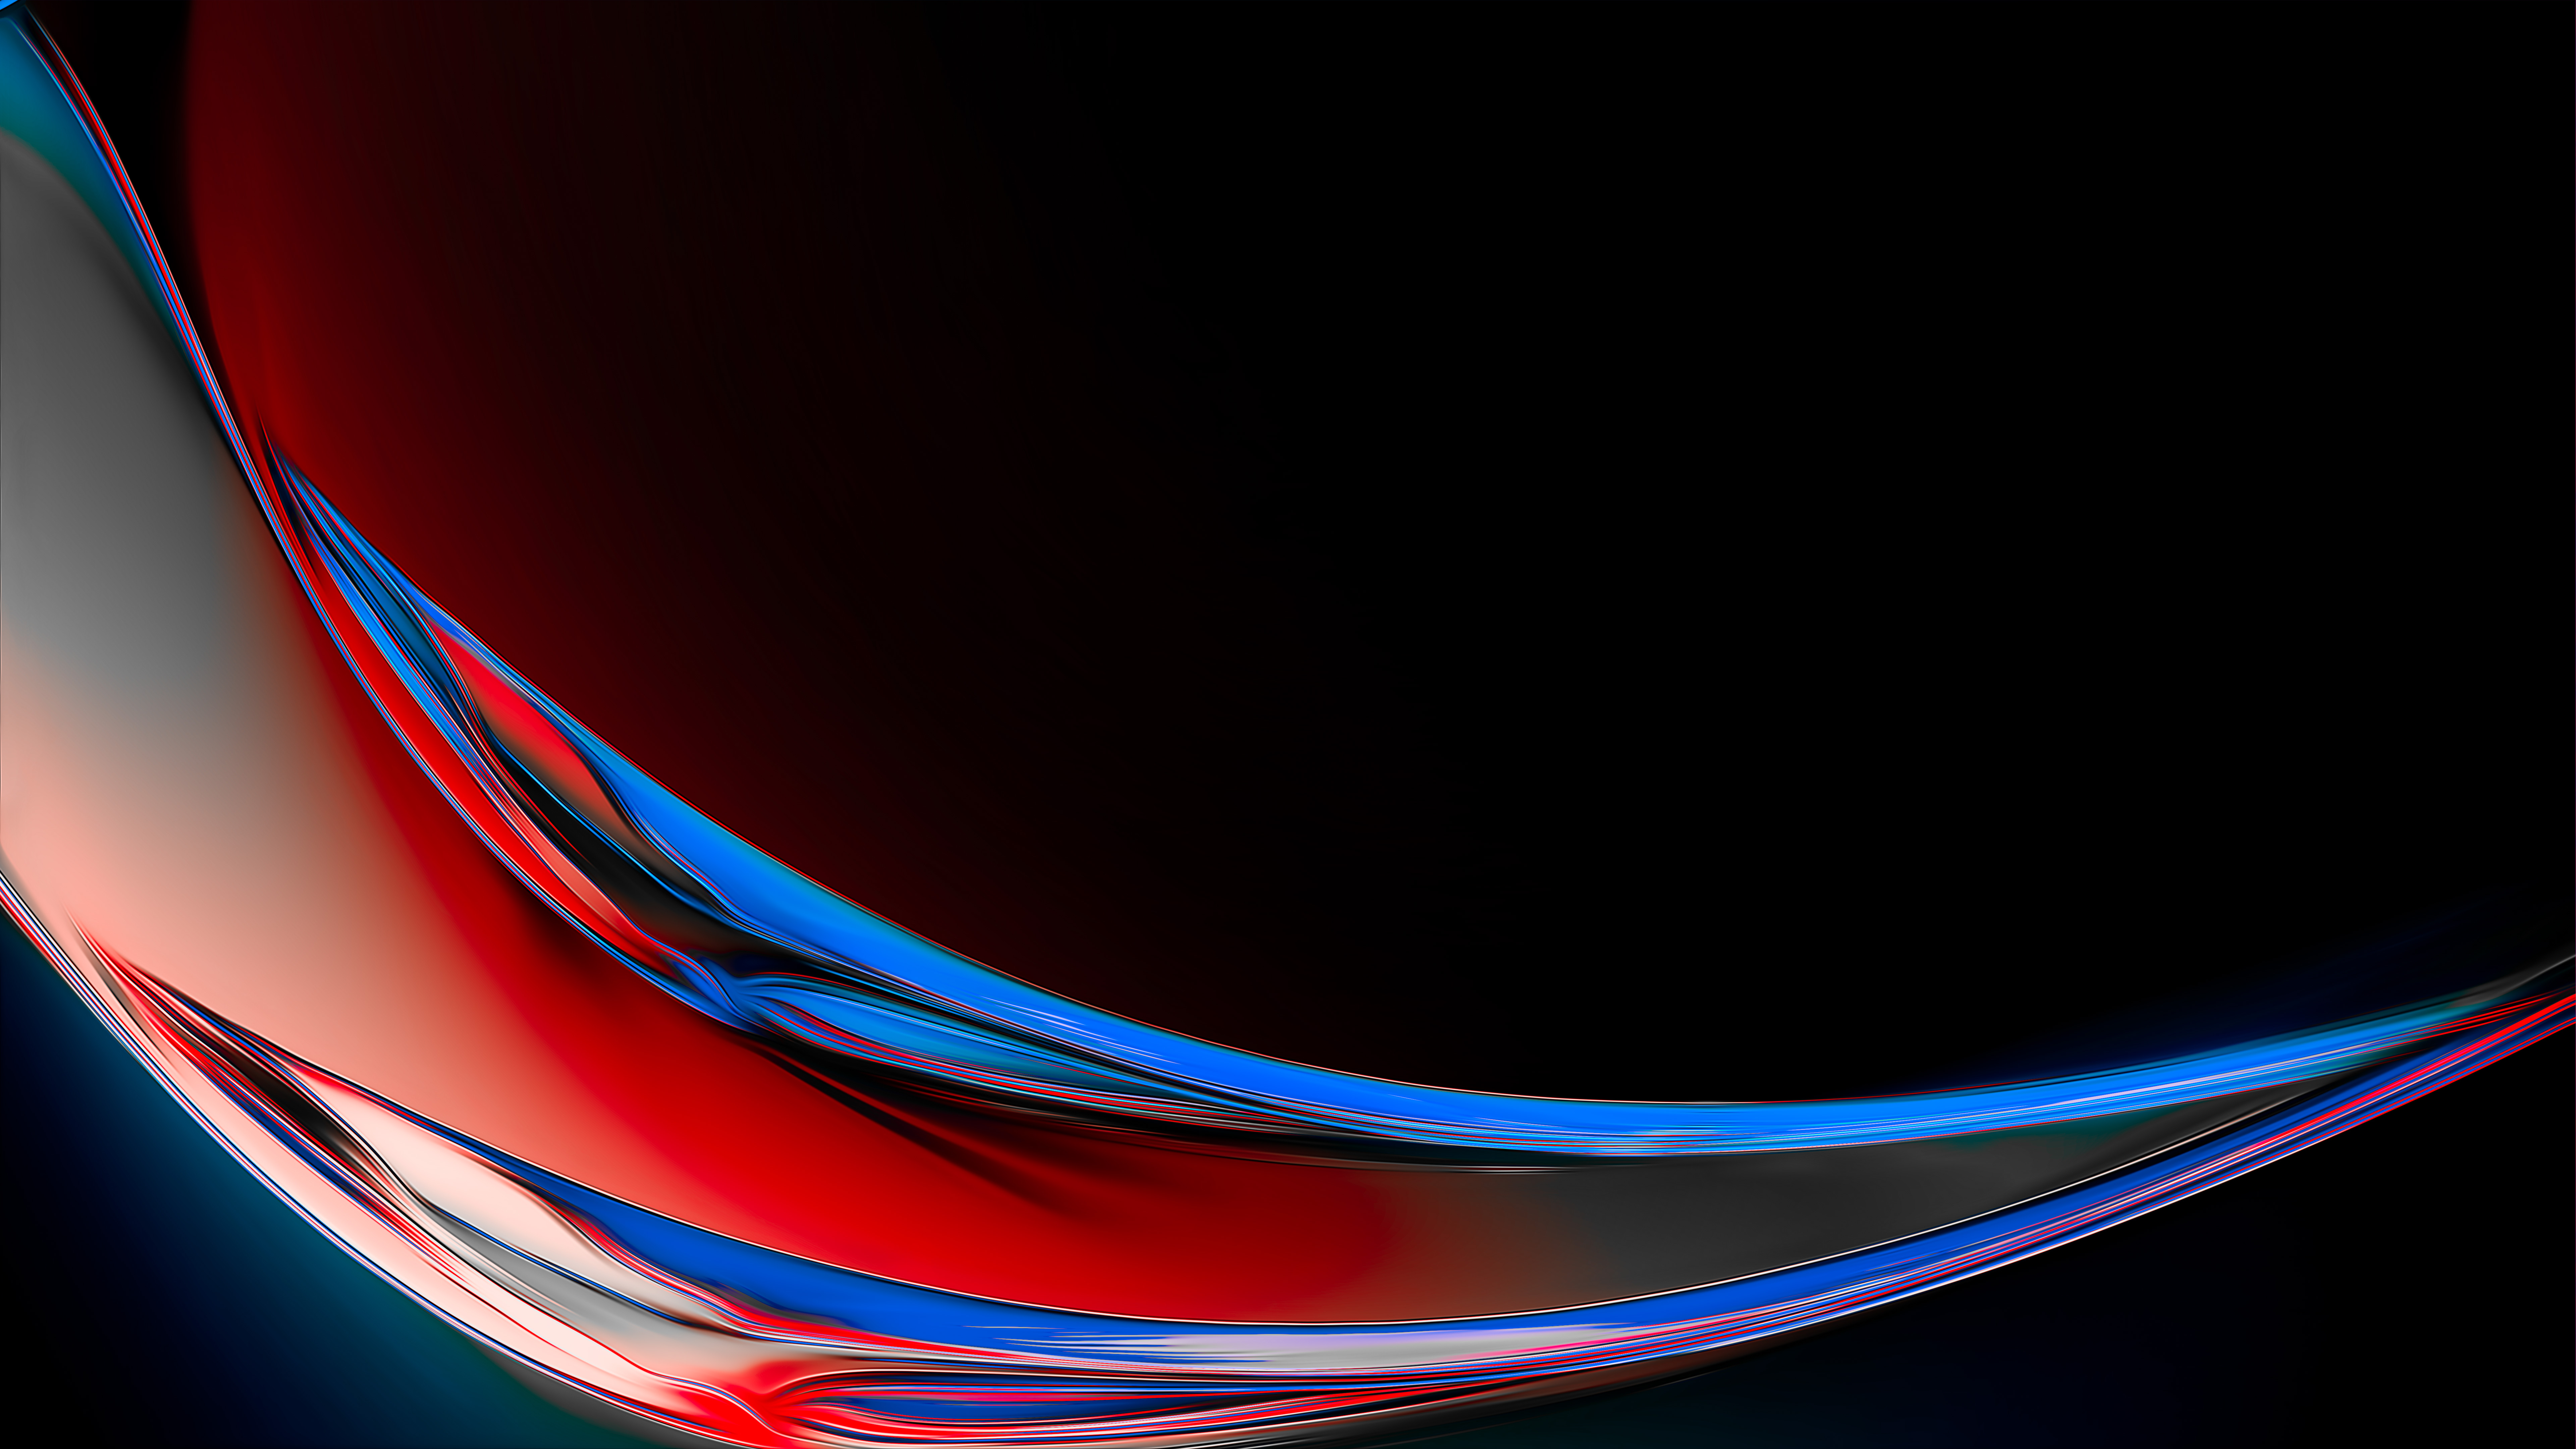 glass reflection colors abstract 4k 1620165546 - Glass Reflection Colors Abstract 4k - Glass Reflection Colors Abstract 4k wallpapers